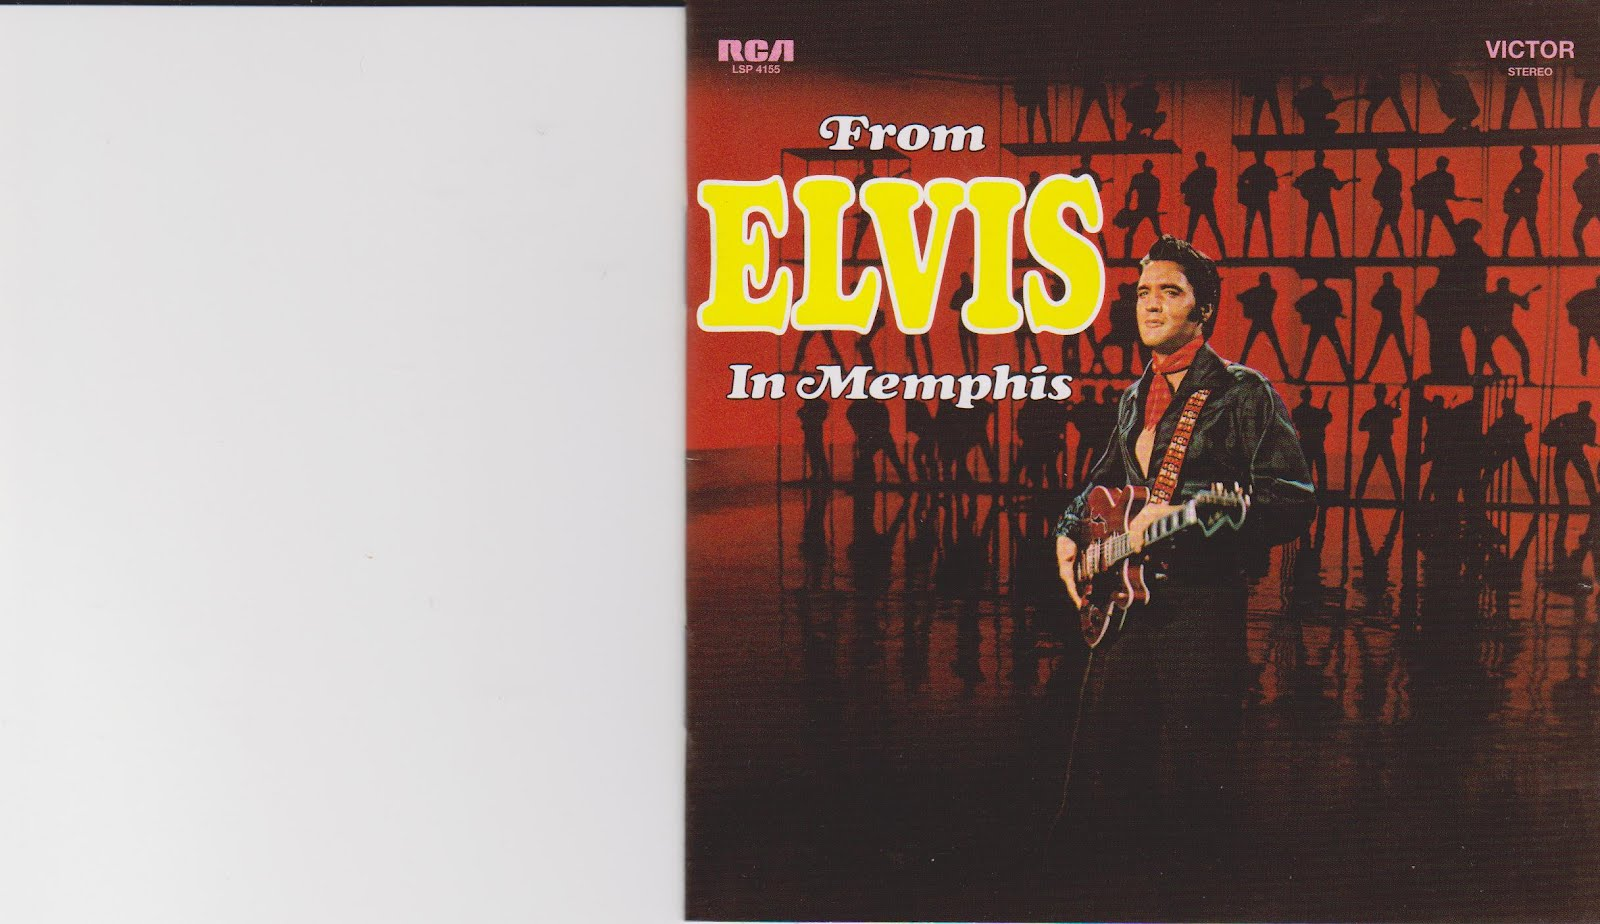 classic album- From ELvis In memphis by Elvis Presley